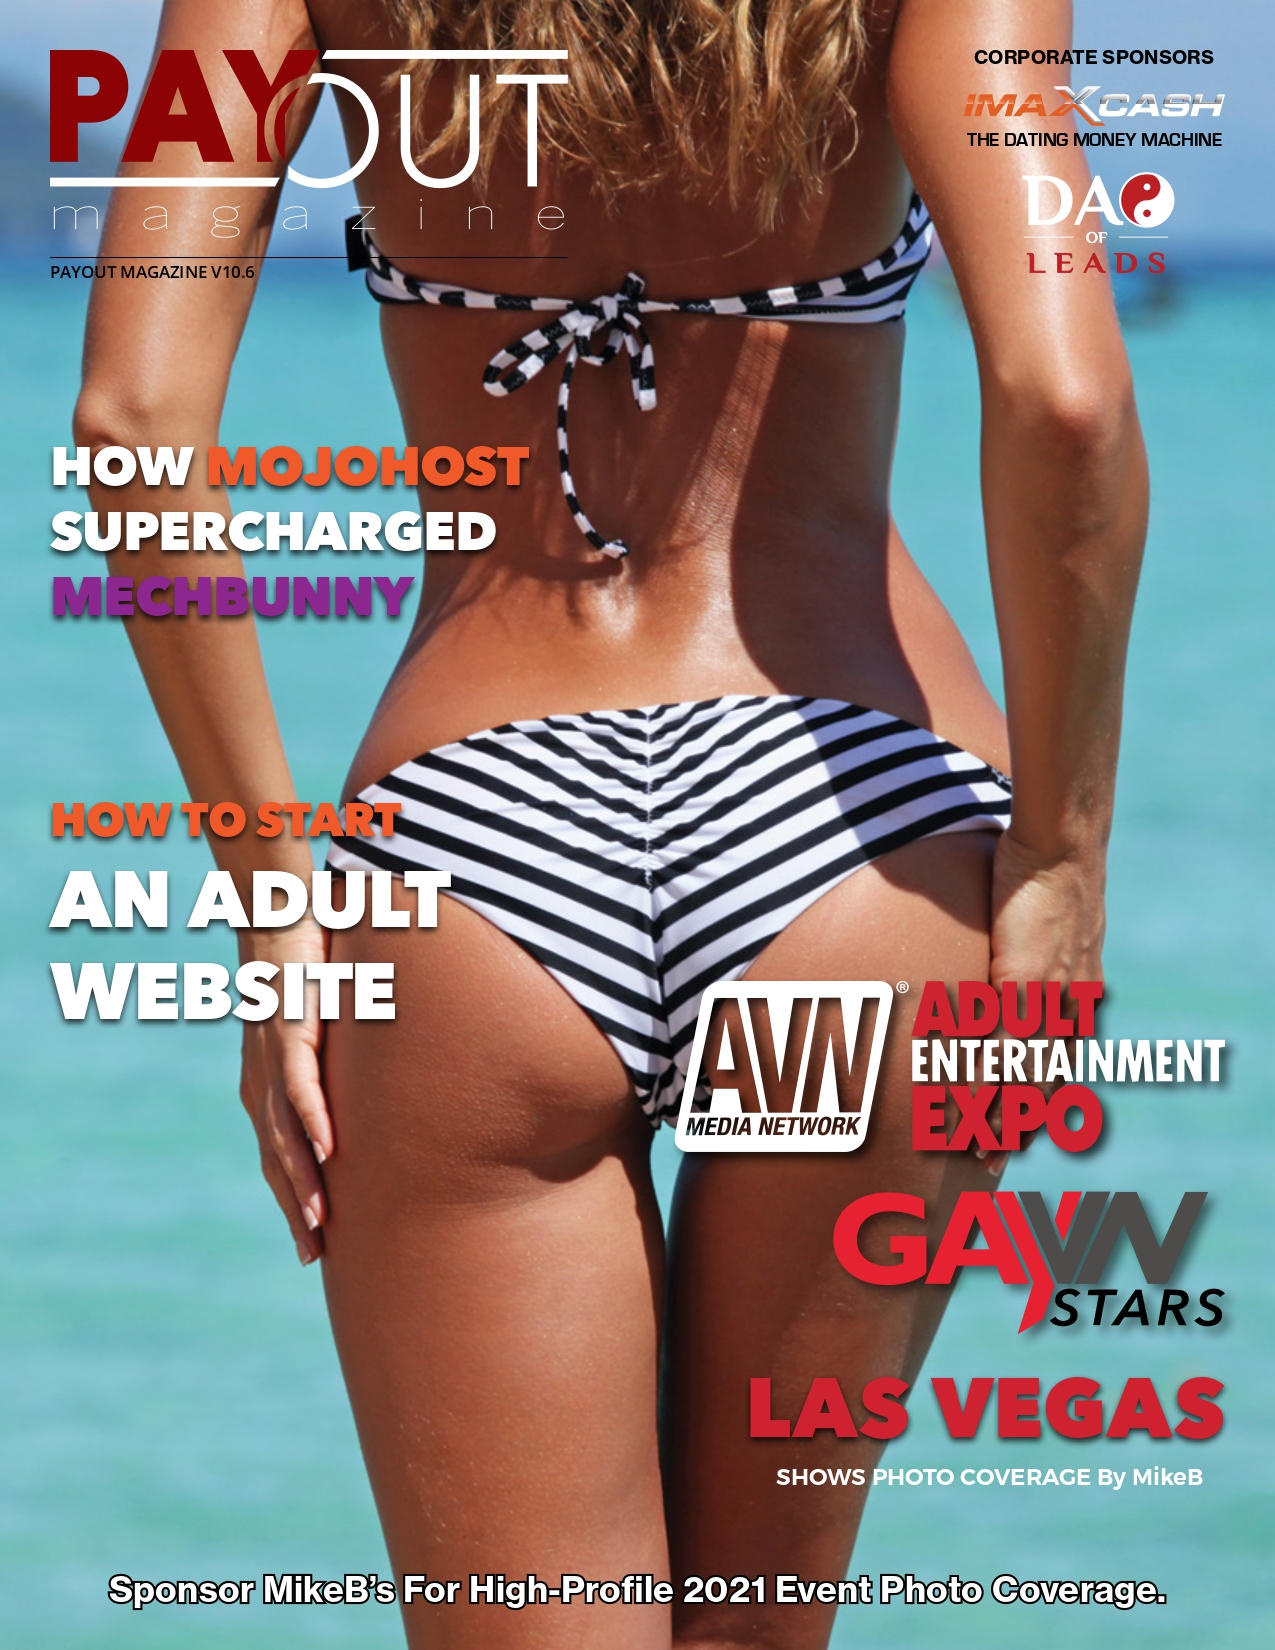 Cover of Payout Magazine Online, Volume 10.03, the silhouette of a surfer babe ankle-deep in setting- sun-lit water.